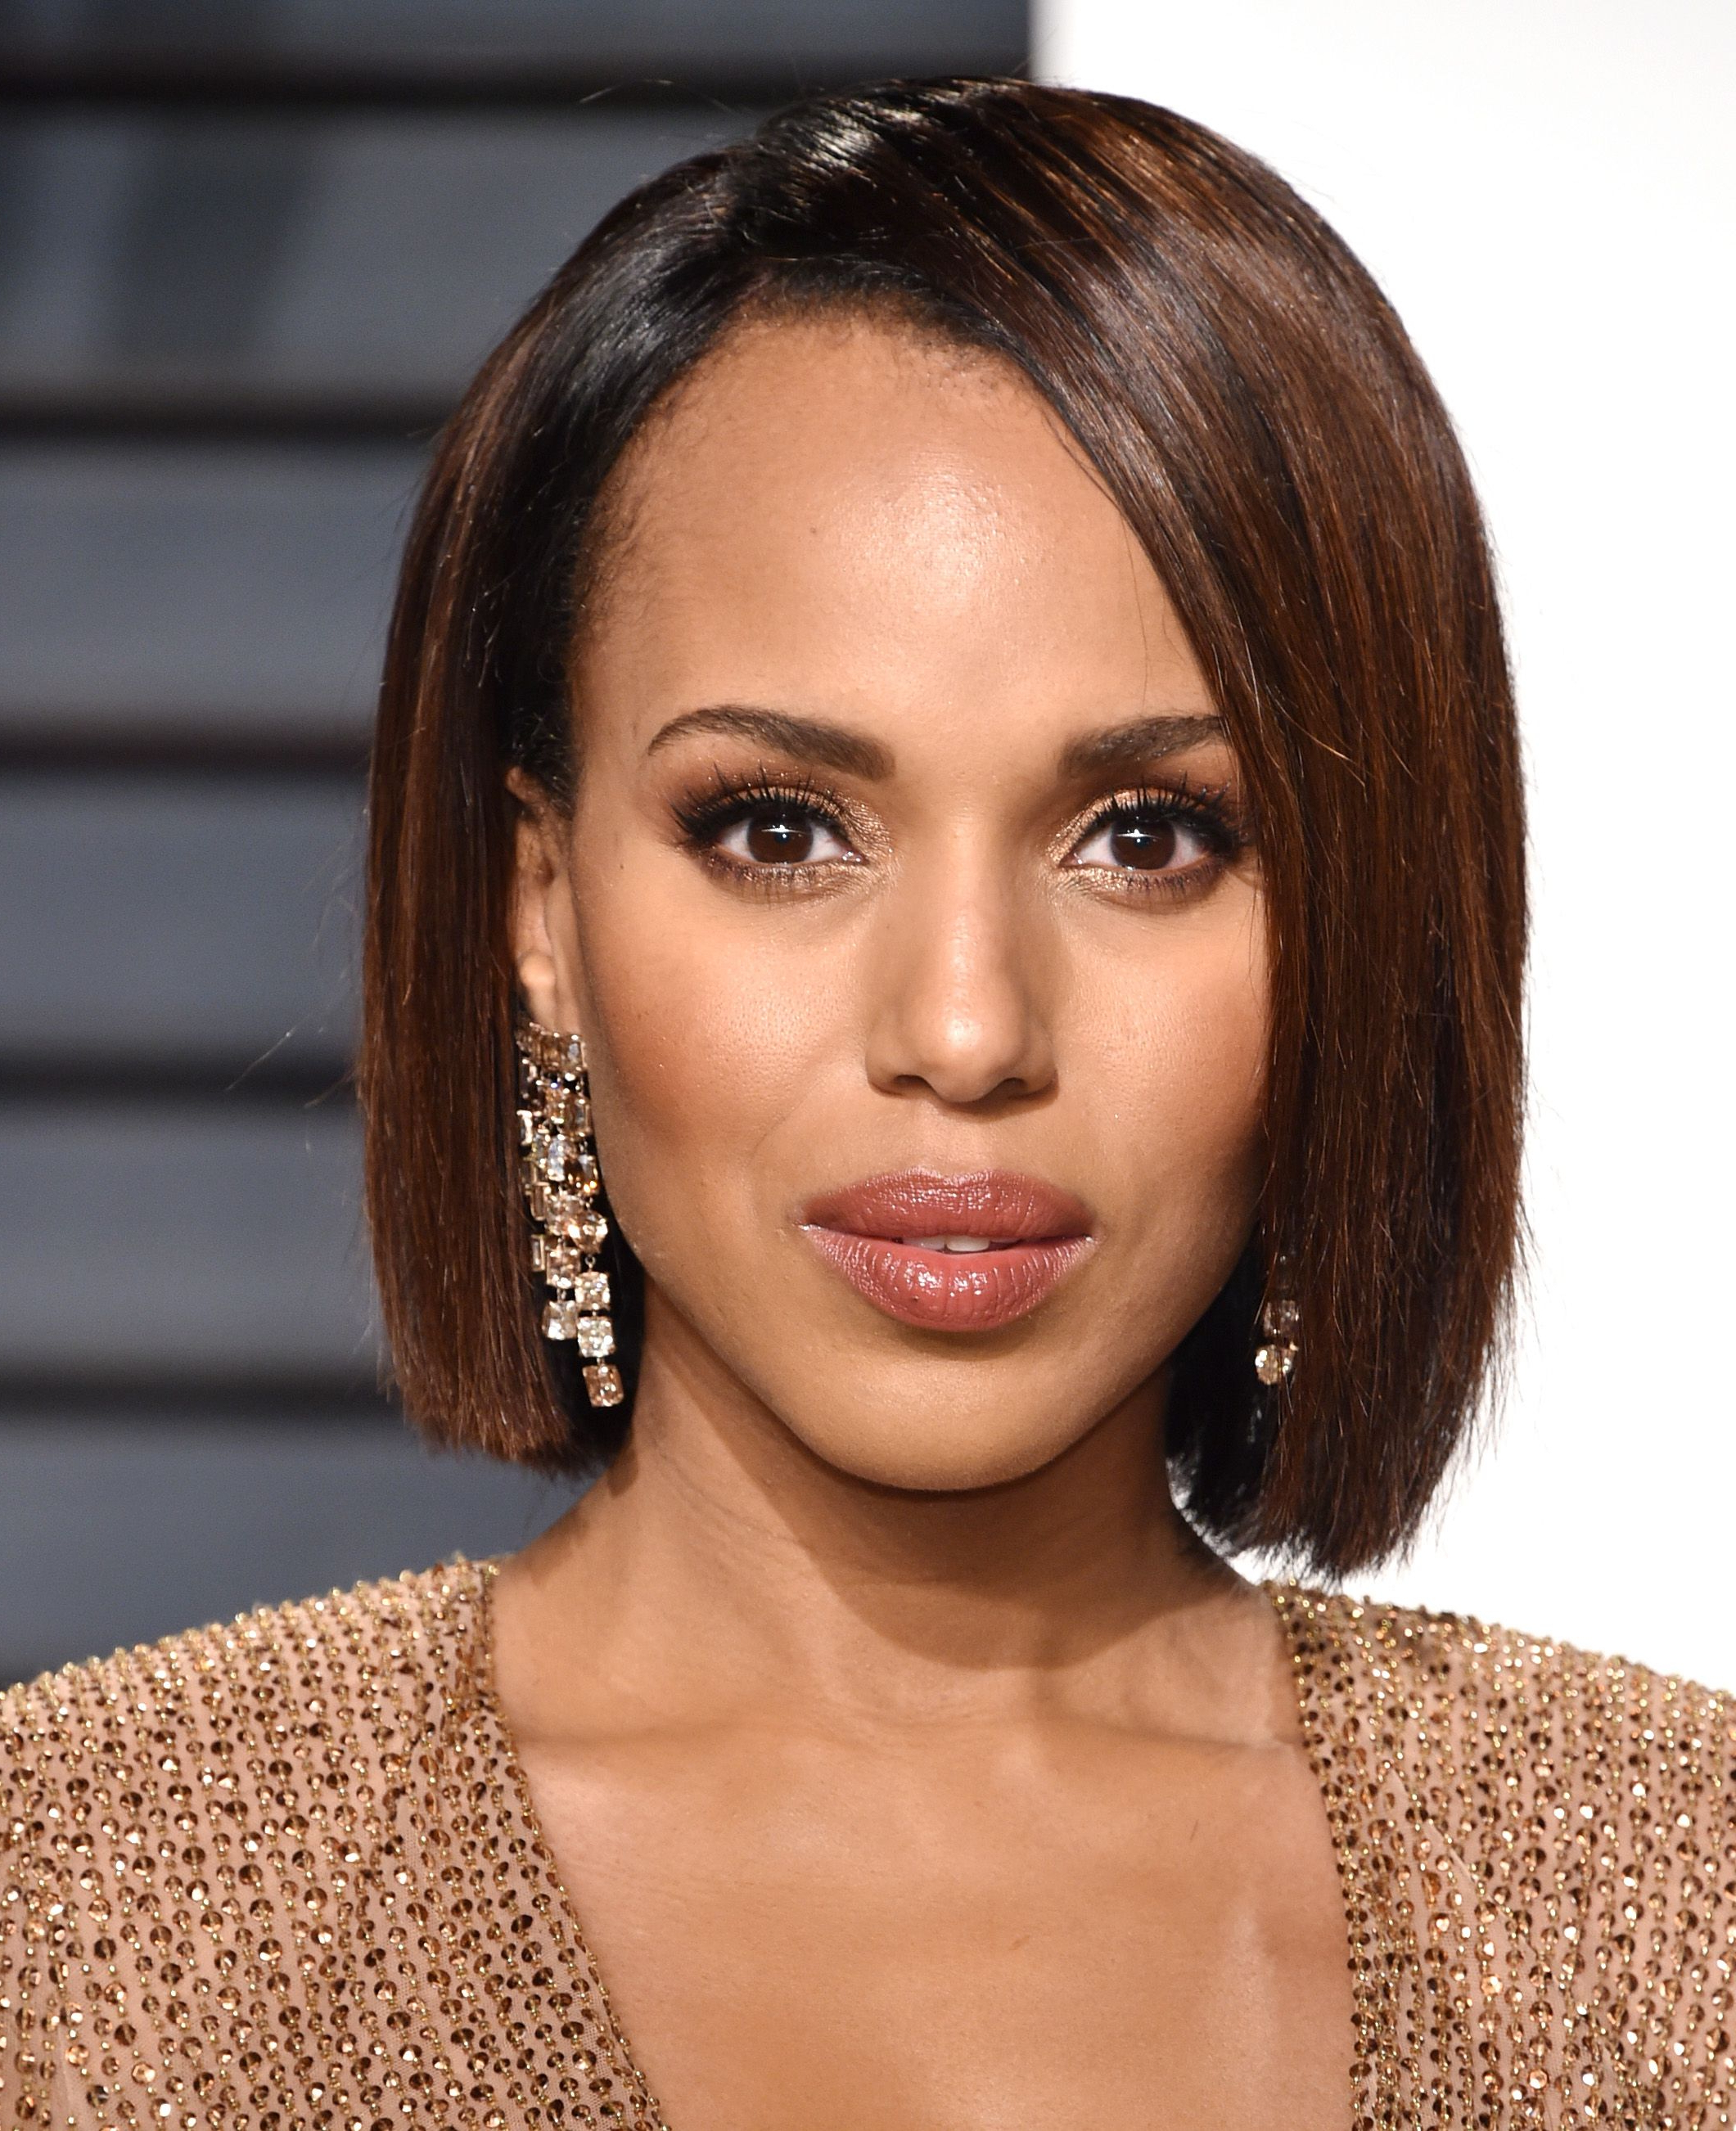 Bob Hairstyles For 2018 – 53 Short Haircut Trends To Try Now Throughout Short Bob Hairstyles With Long Edgy Layers (View 22 of 25)